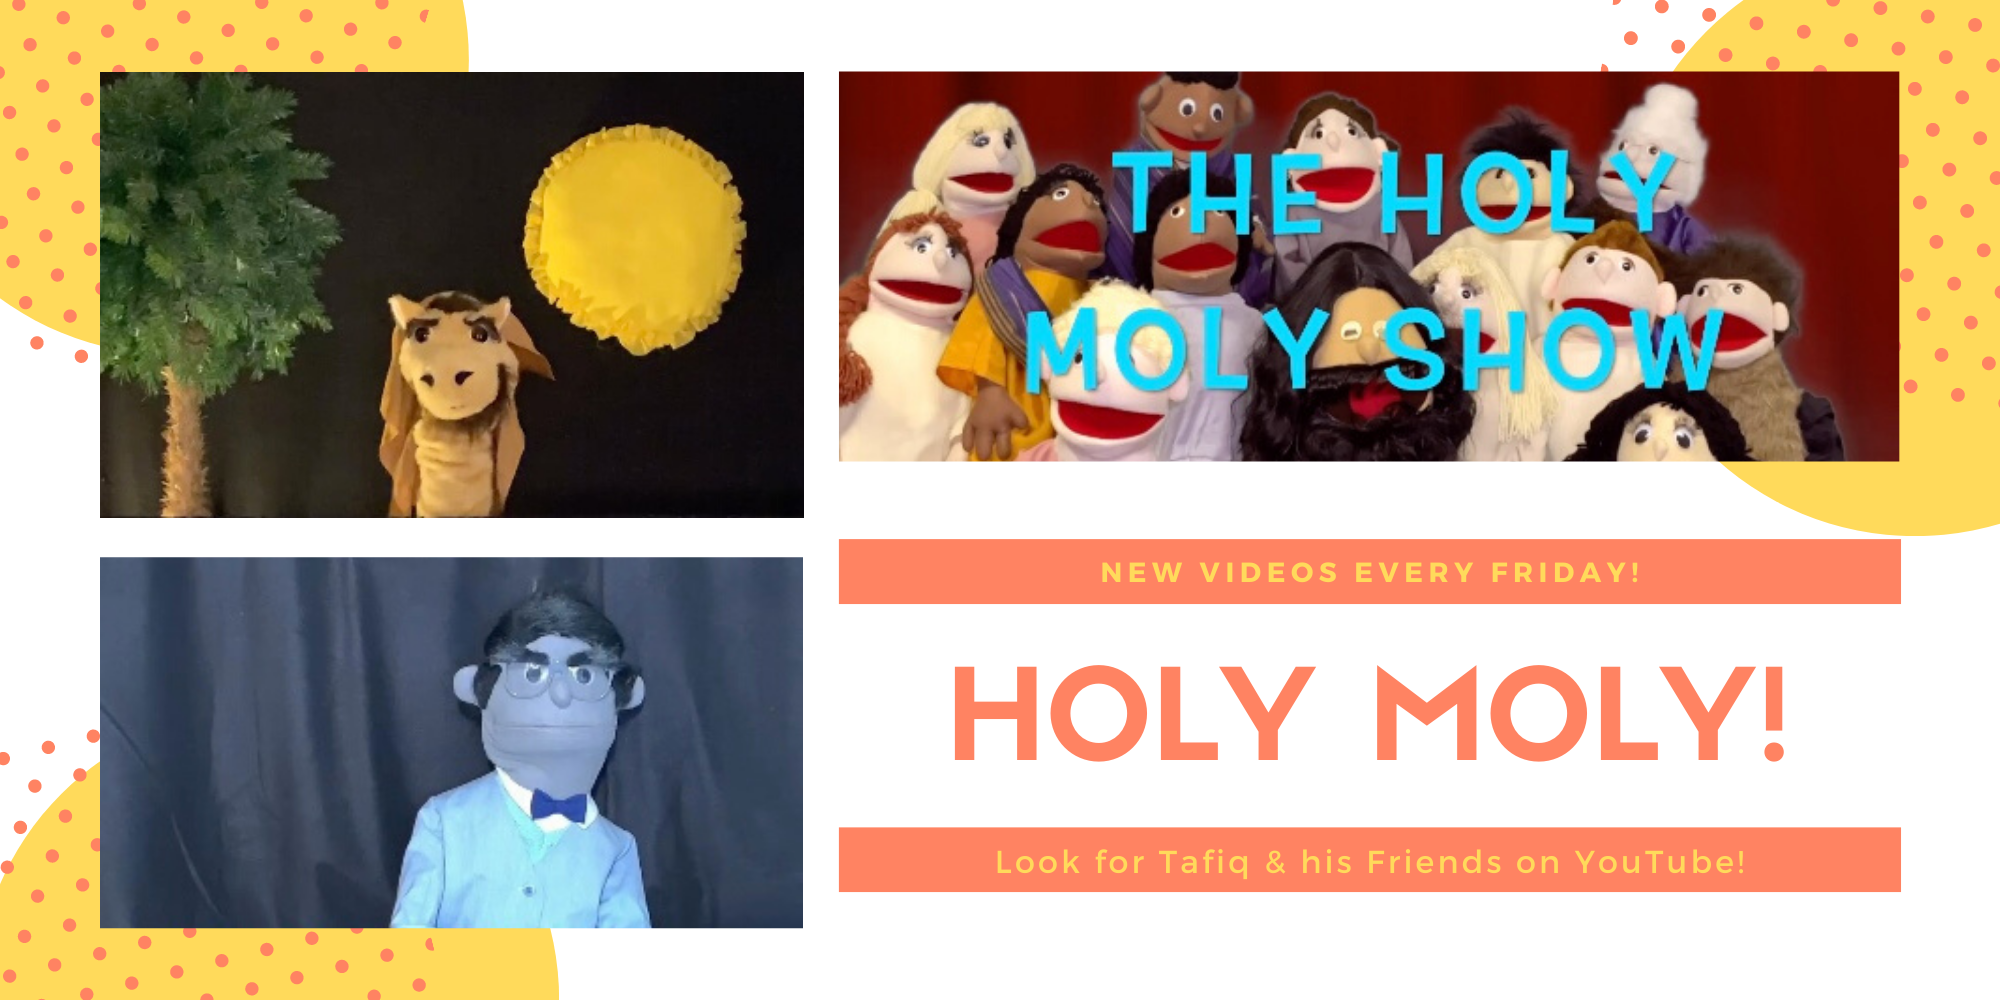 Holy Moly featuring Tafiq & his Friends